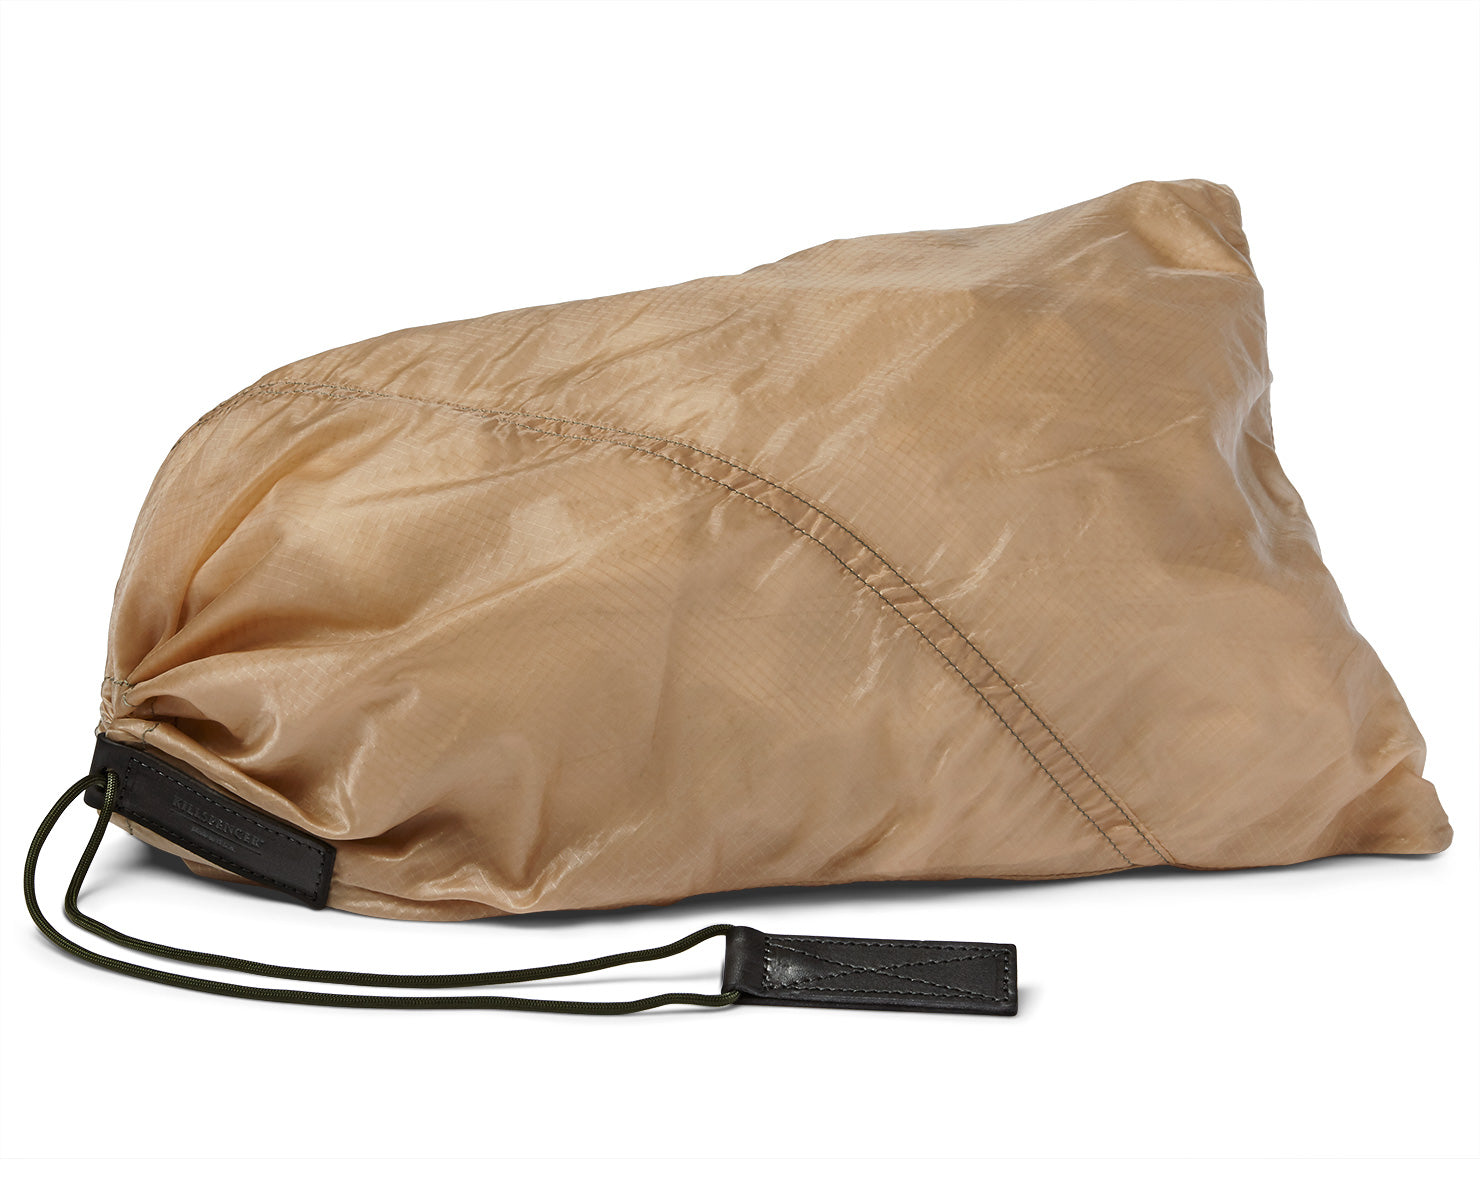 PARACHUTE BAG 2.0 - Shoe Bag | KILLSPENCER® - Tan Parachute